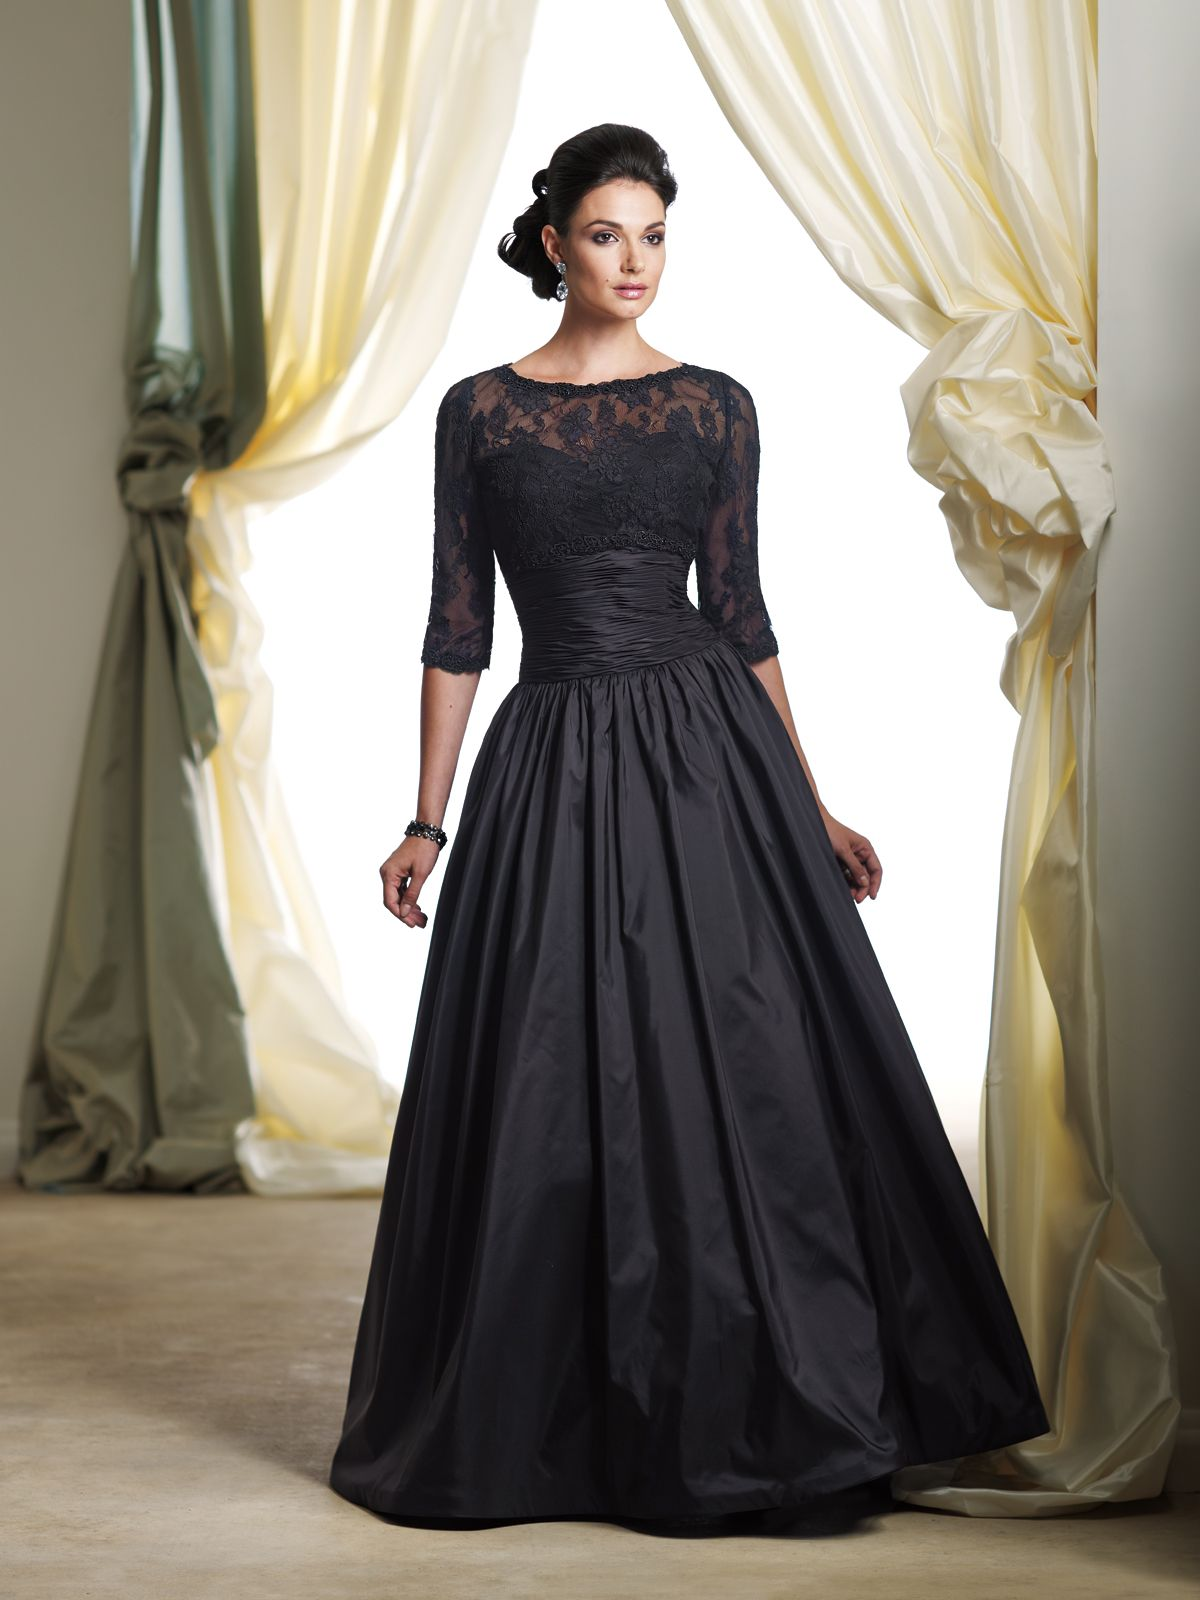 Twopiece silk taffeta and lace ball gown set strapless ball gown